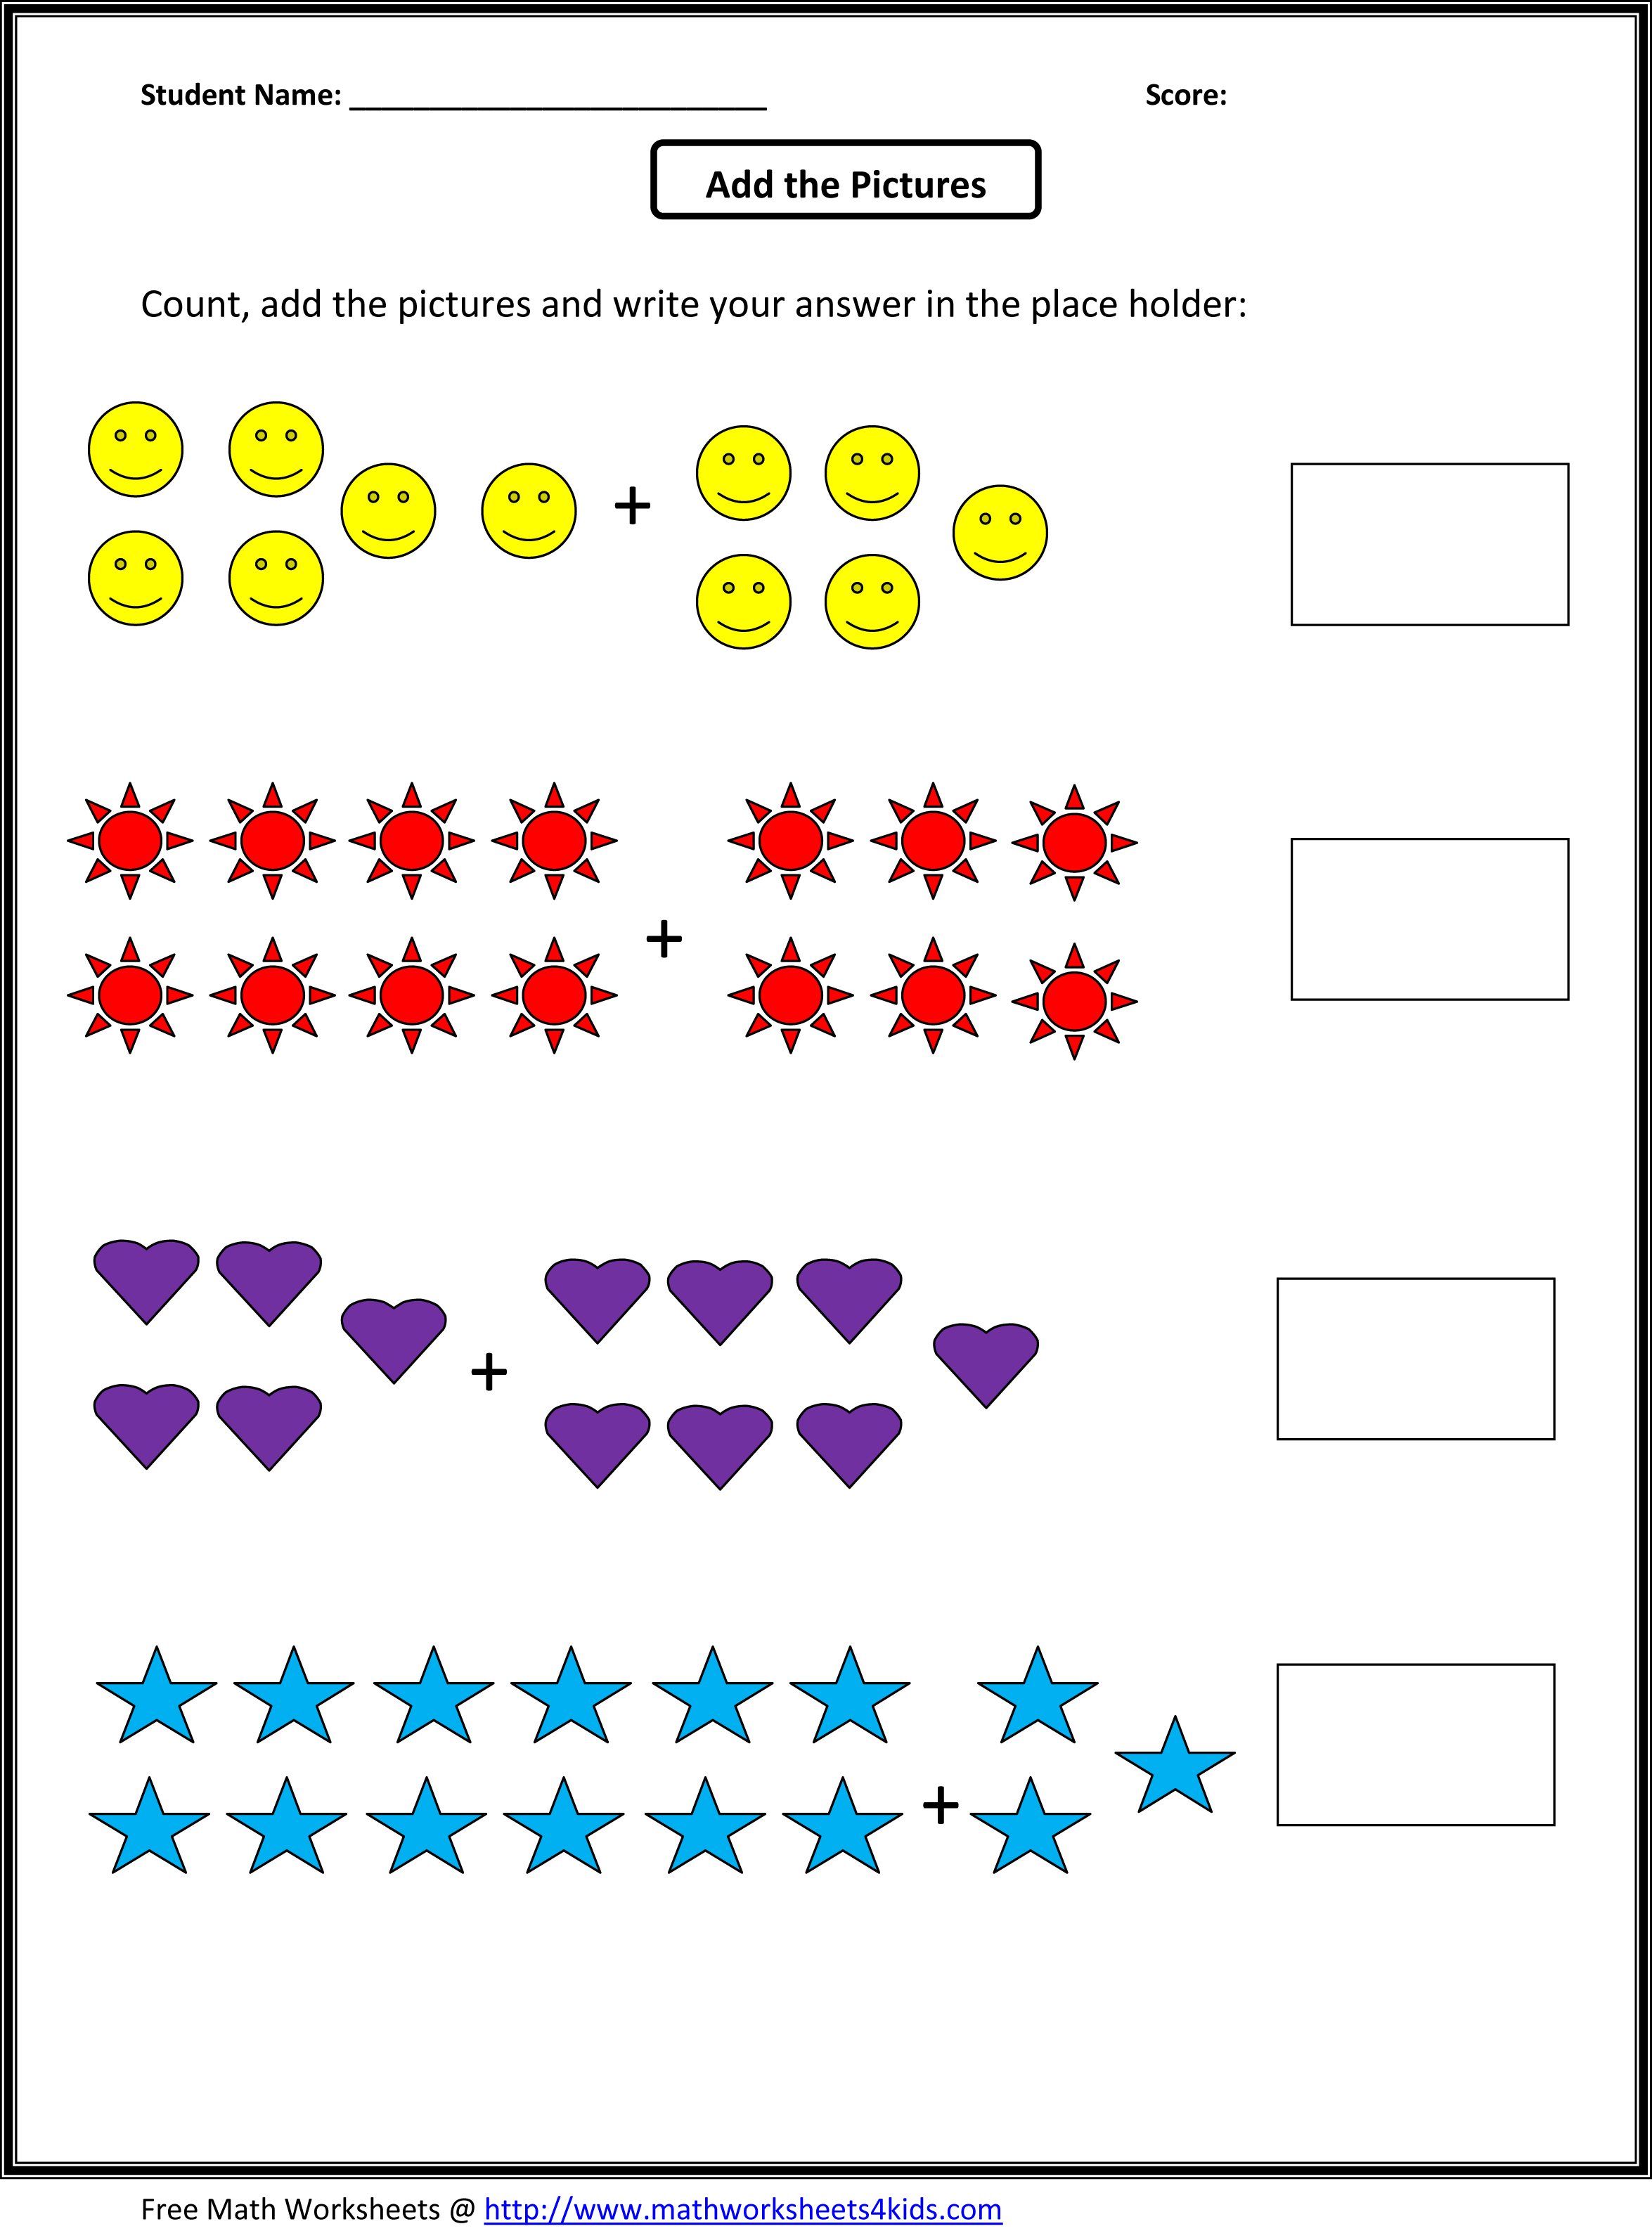 Weirdmailus  Unique Grade  Maths Worksheet  Reocurent With Hot Math Worksheets For St Grade Free  Reocurent With Cute Introduction To Fractions Worksheet Also Continent Worksheets For Nd Grade In Addition Division Worksheet Grade  And You Sight Word Worksheet As Well As Reference Worksheet Additionally Analogy Worksheets For Th Grade From Reocurentcom With Weirdmailus  Hot Grade  Maths Worksheet  Reocurent With Cute Math Worksheets For St Grade Free  Reocurent And Unique Introduction To Fractions Worksheet Also Continent Worksheets For Nd Grade In Addition Division Worksheet Grade  From Reocurentcom